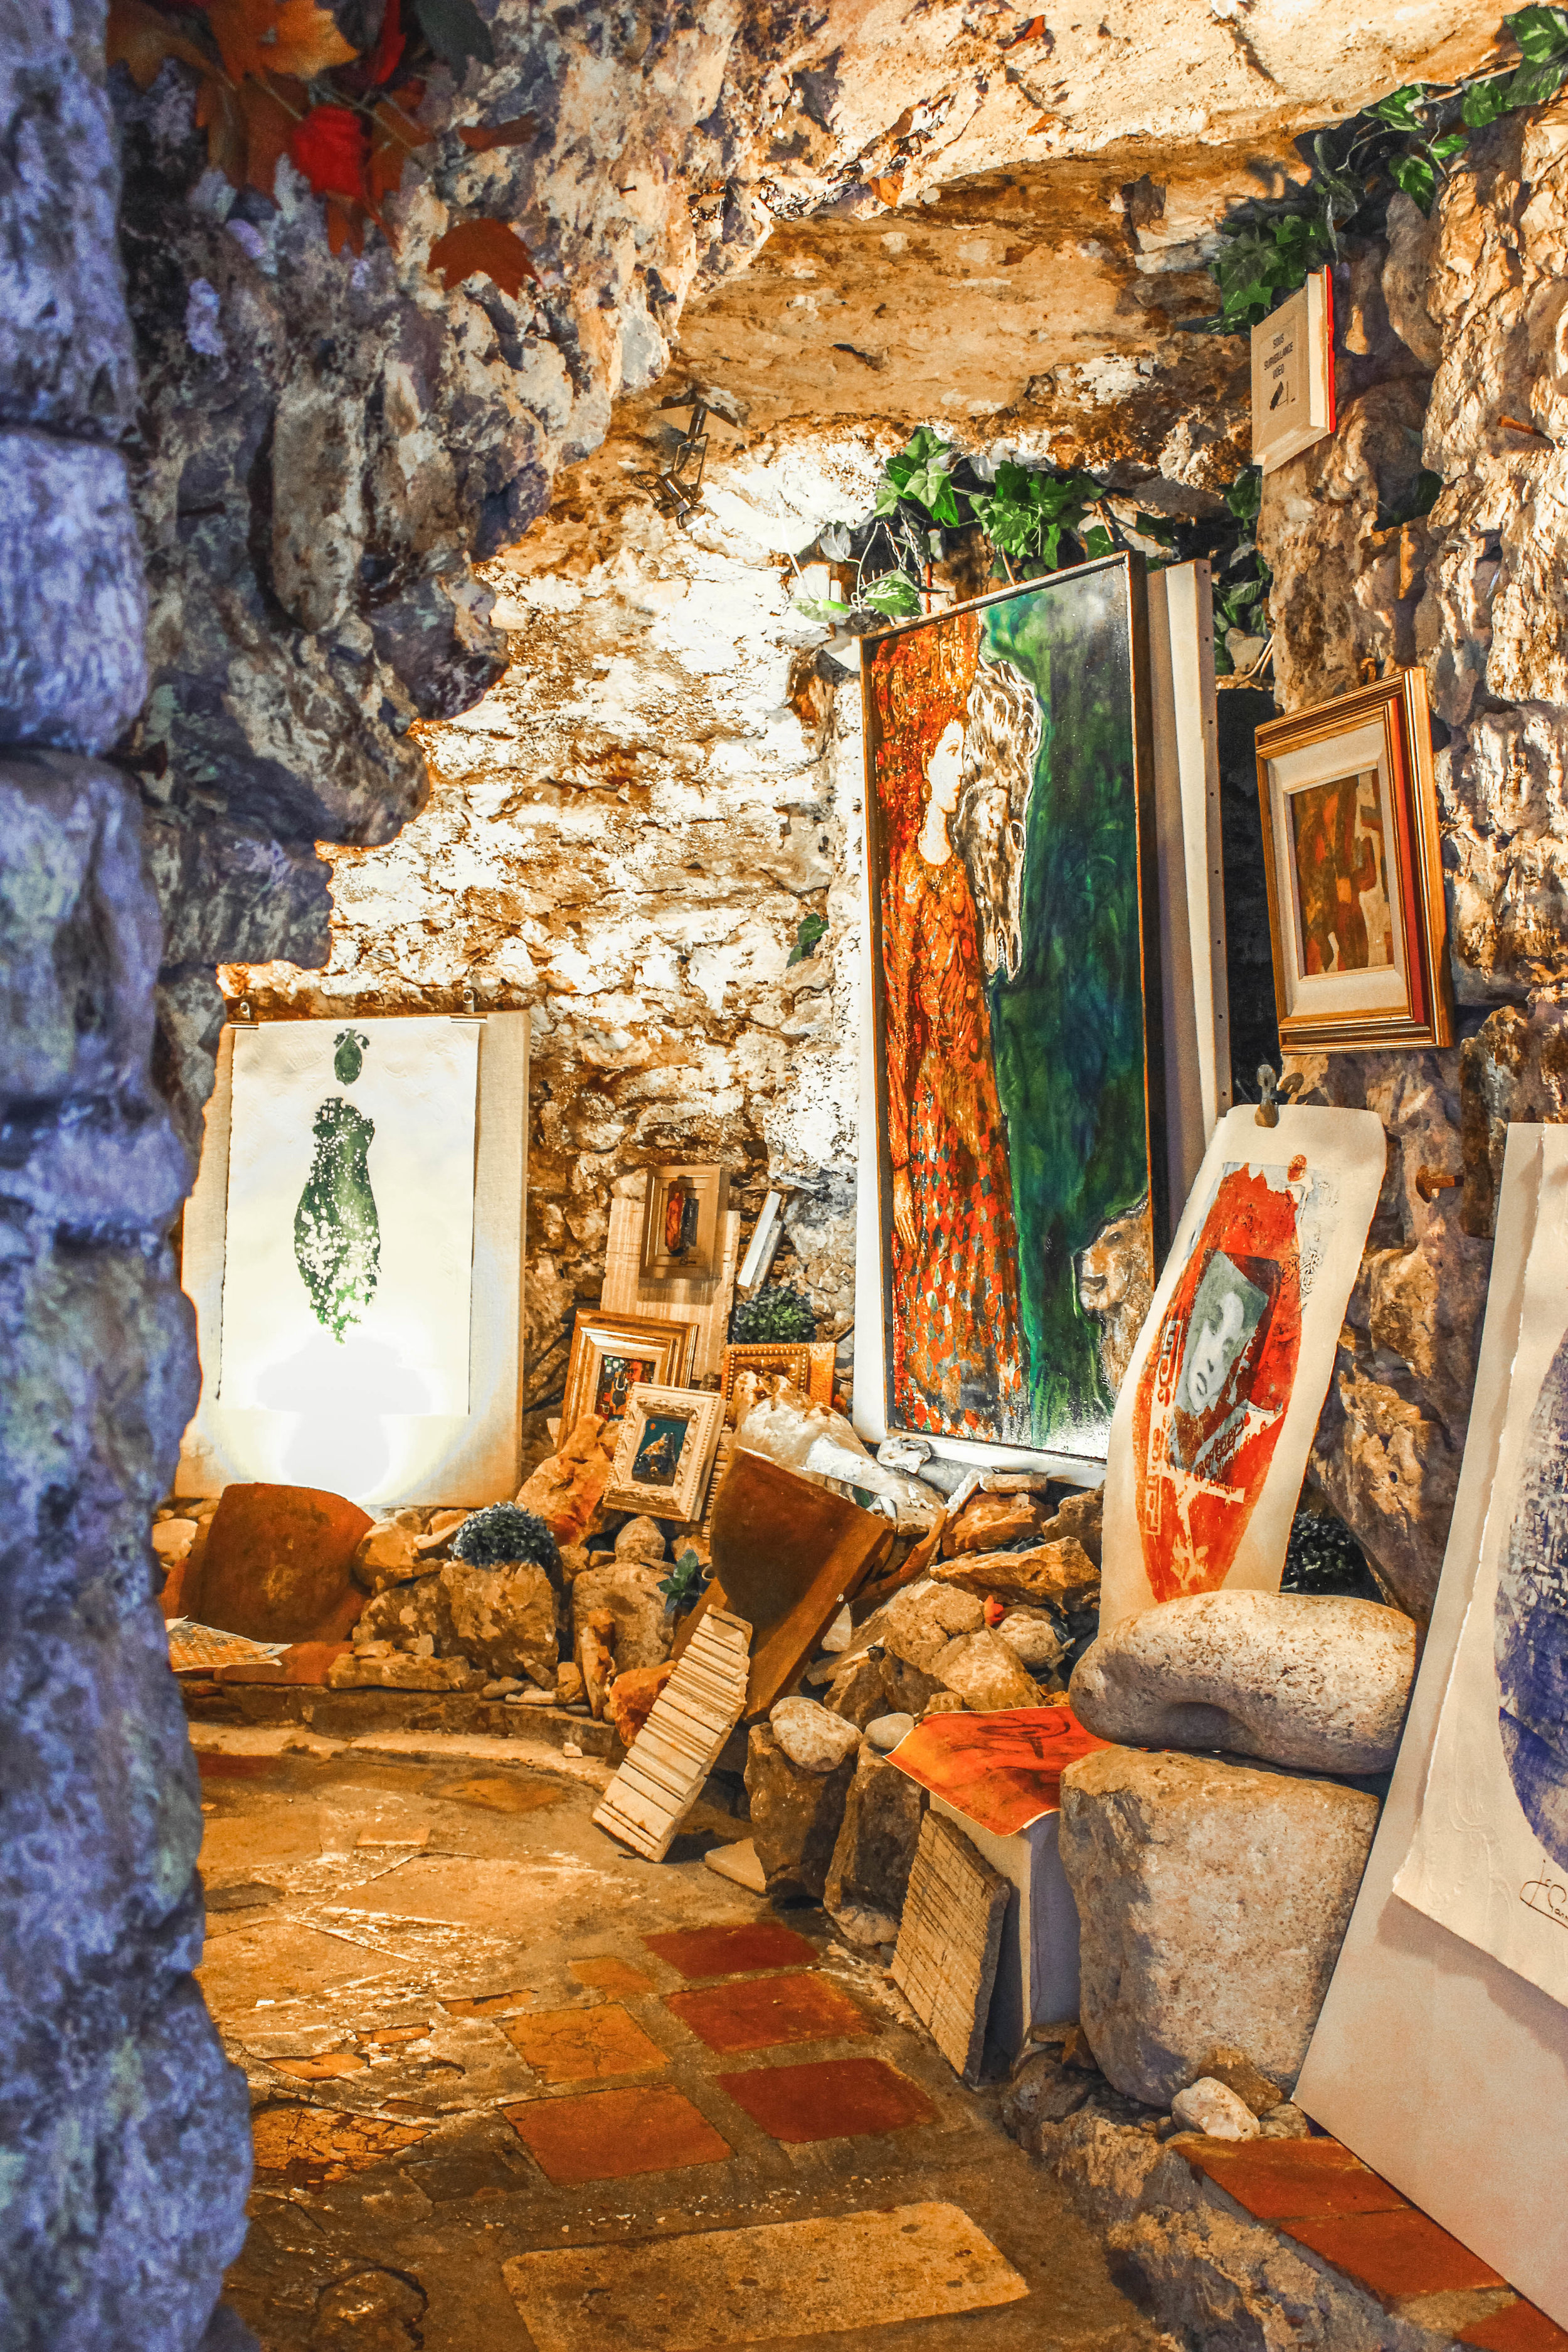 Store in Eze